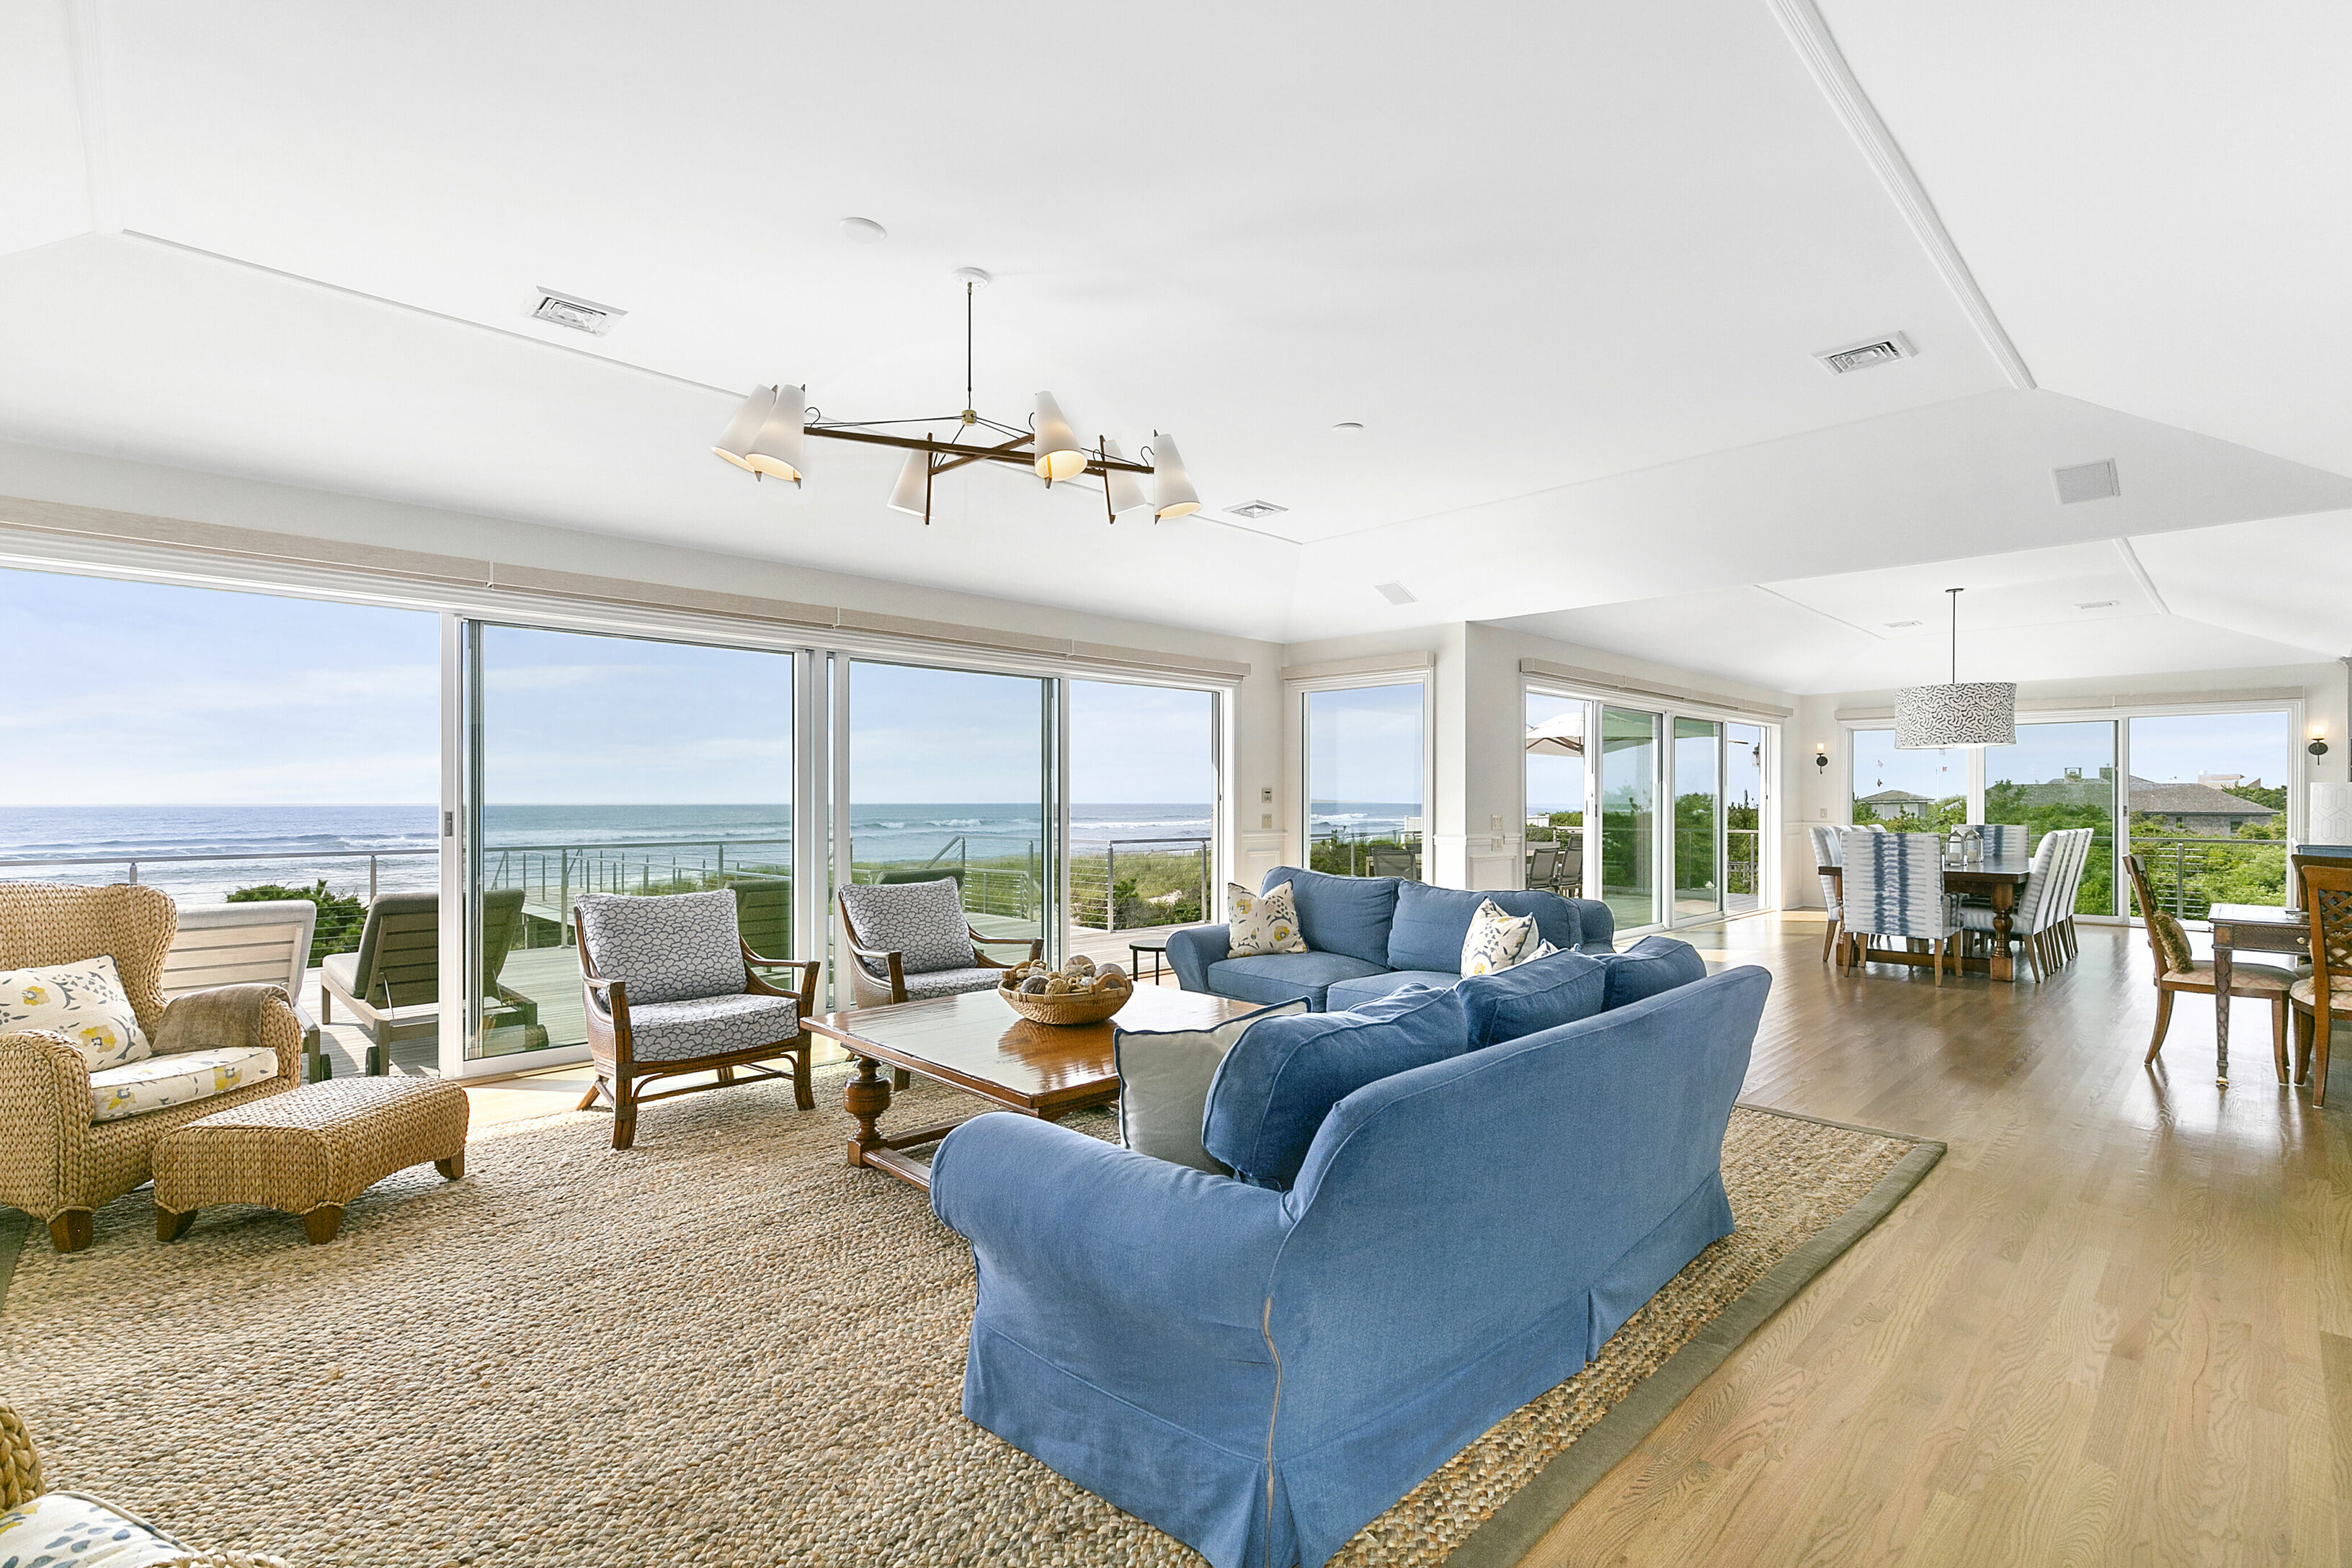 46 Dune Rd - Quogue South, New York